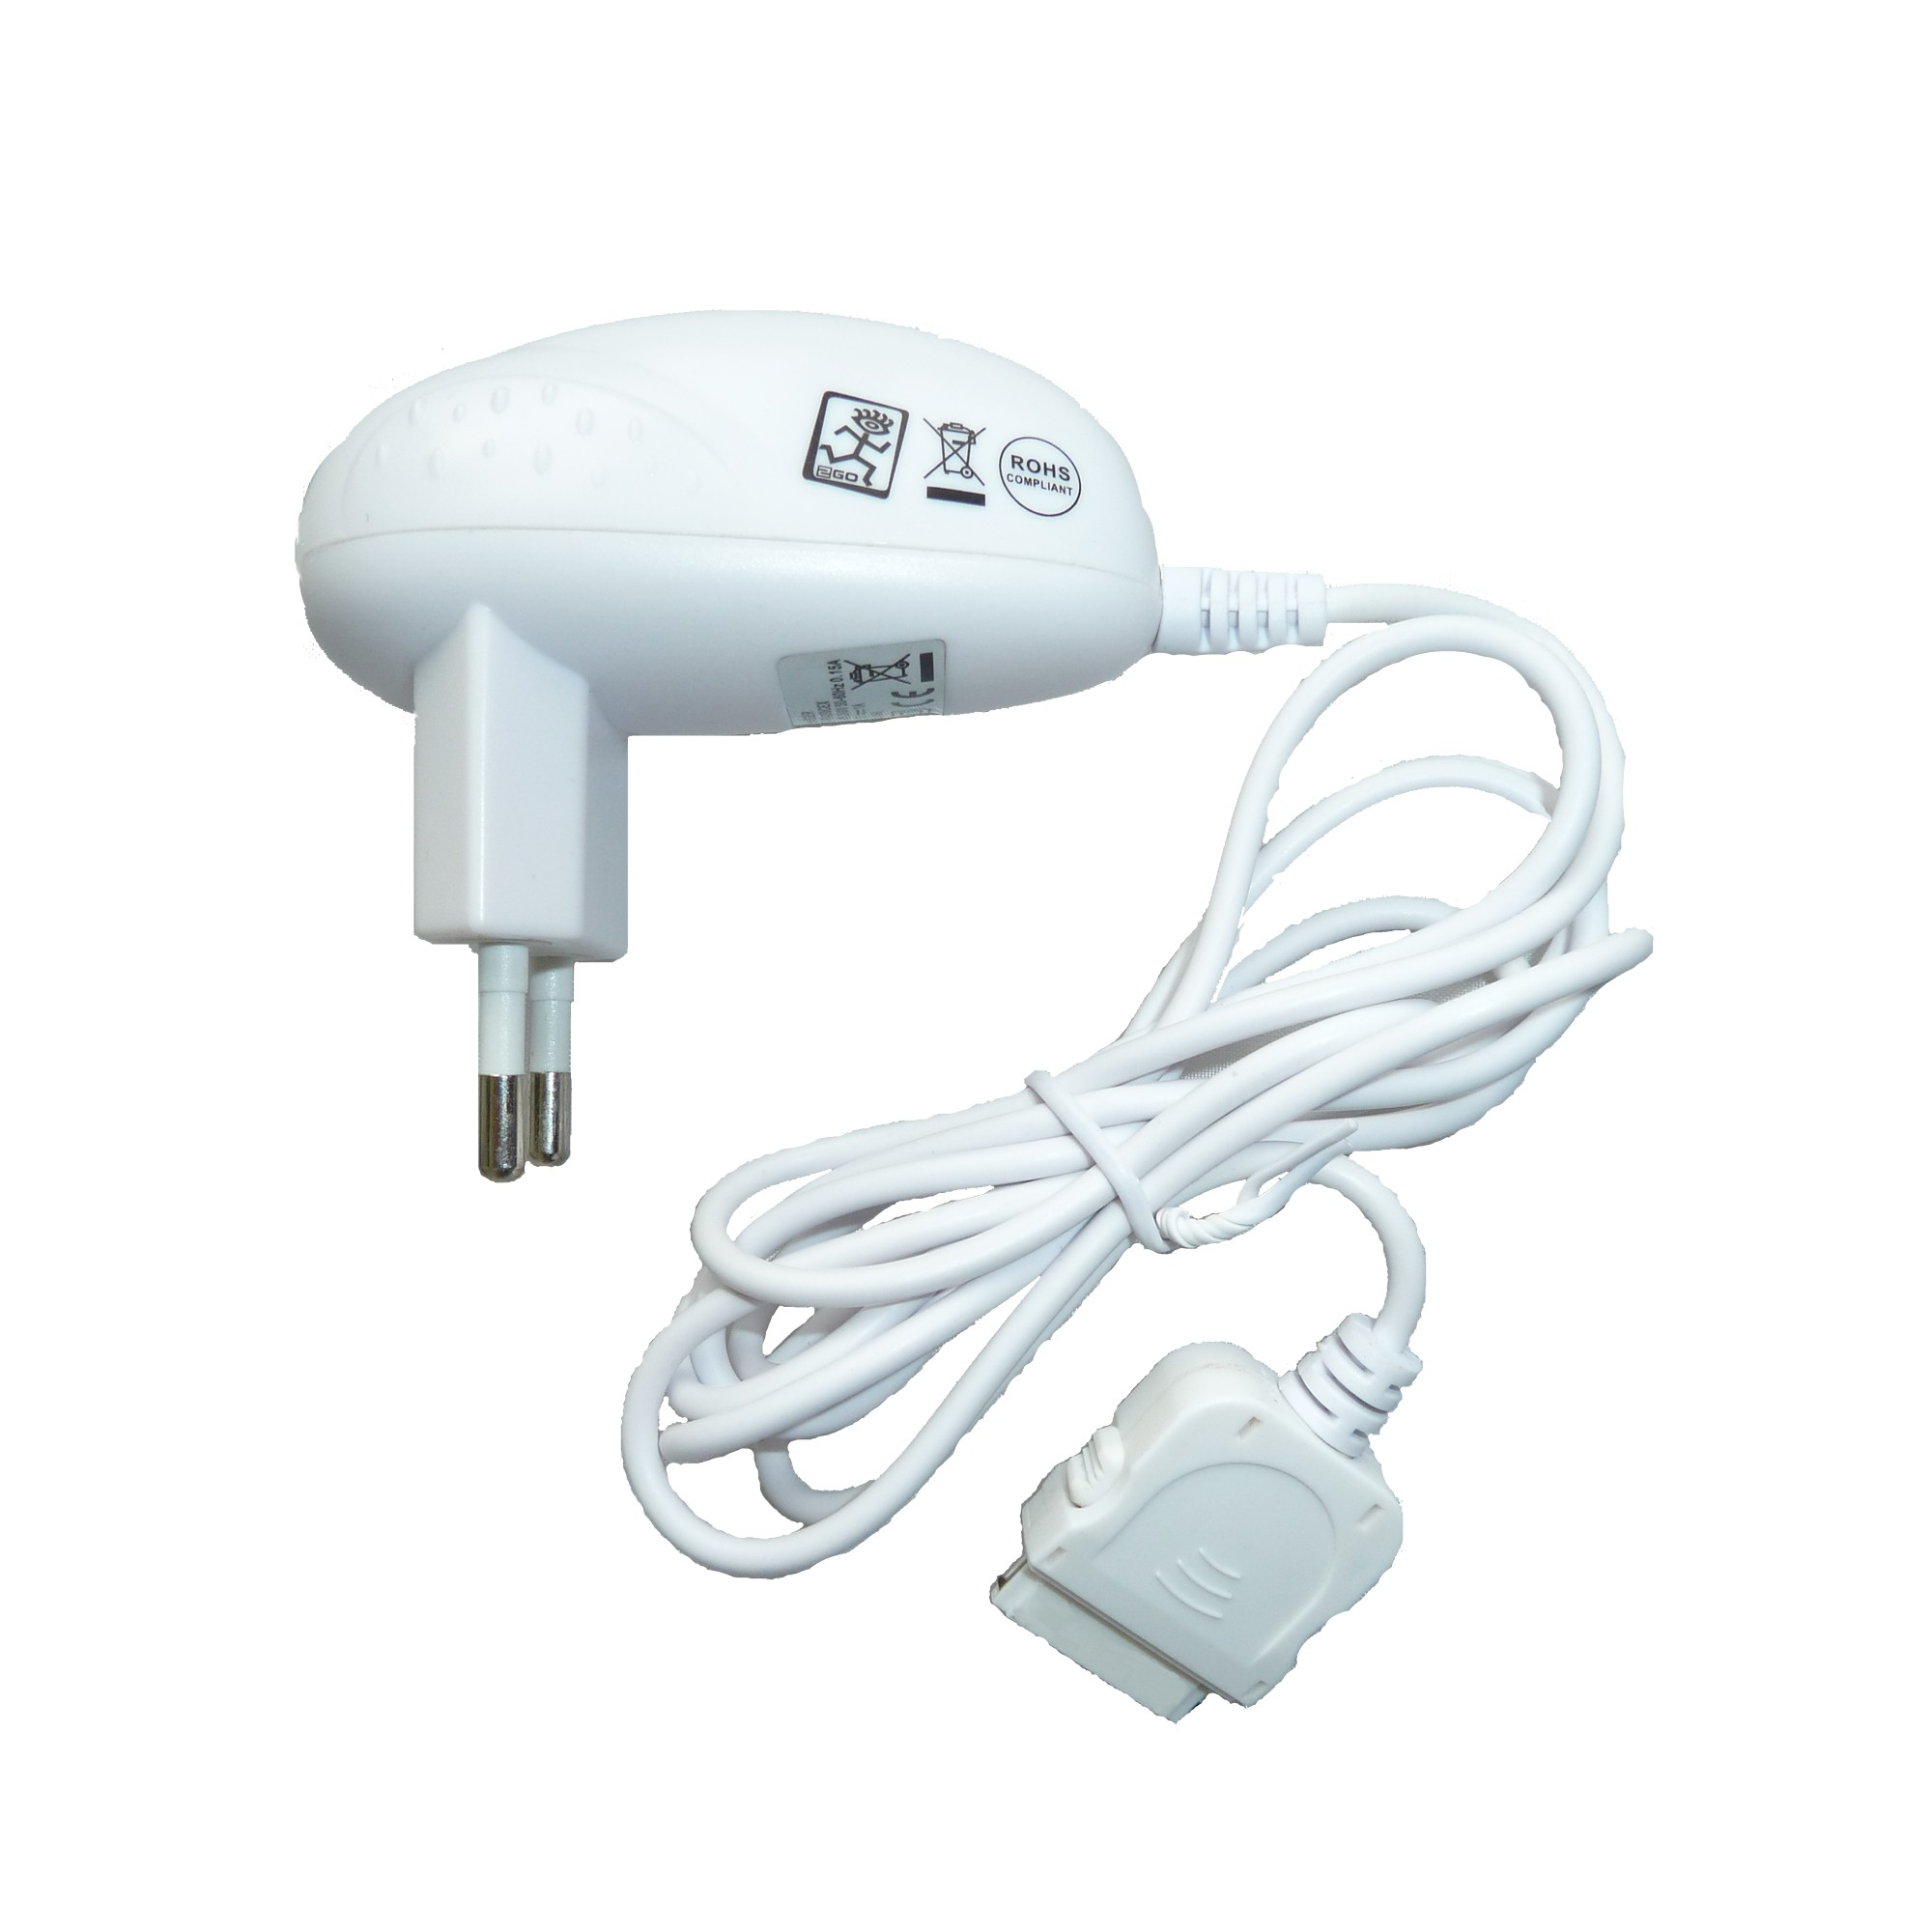 2GO charger for Apple gadgets – Bild 1